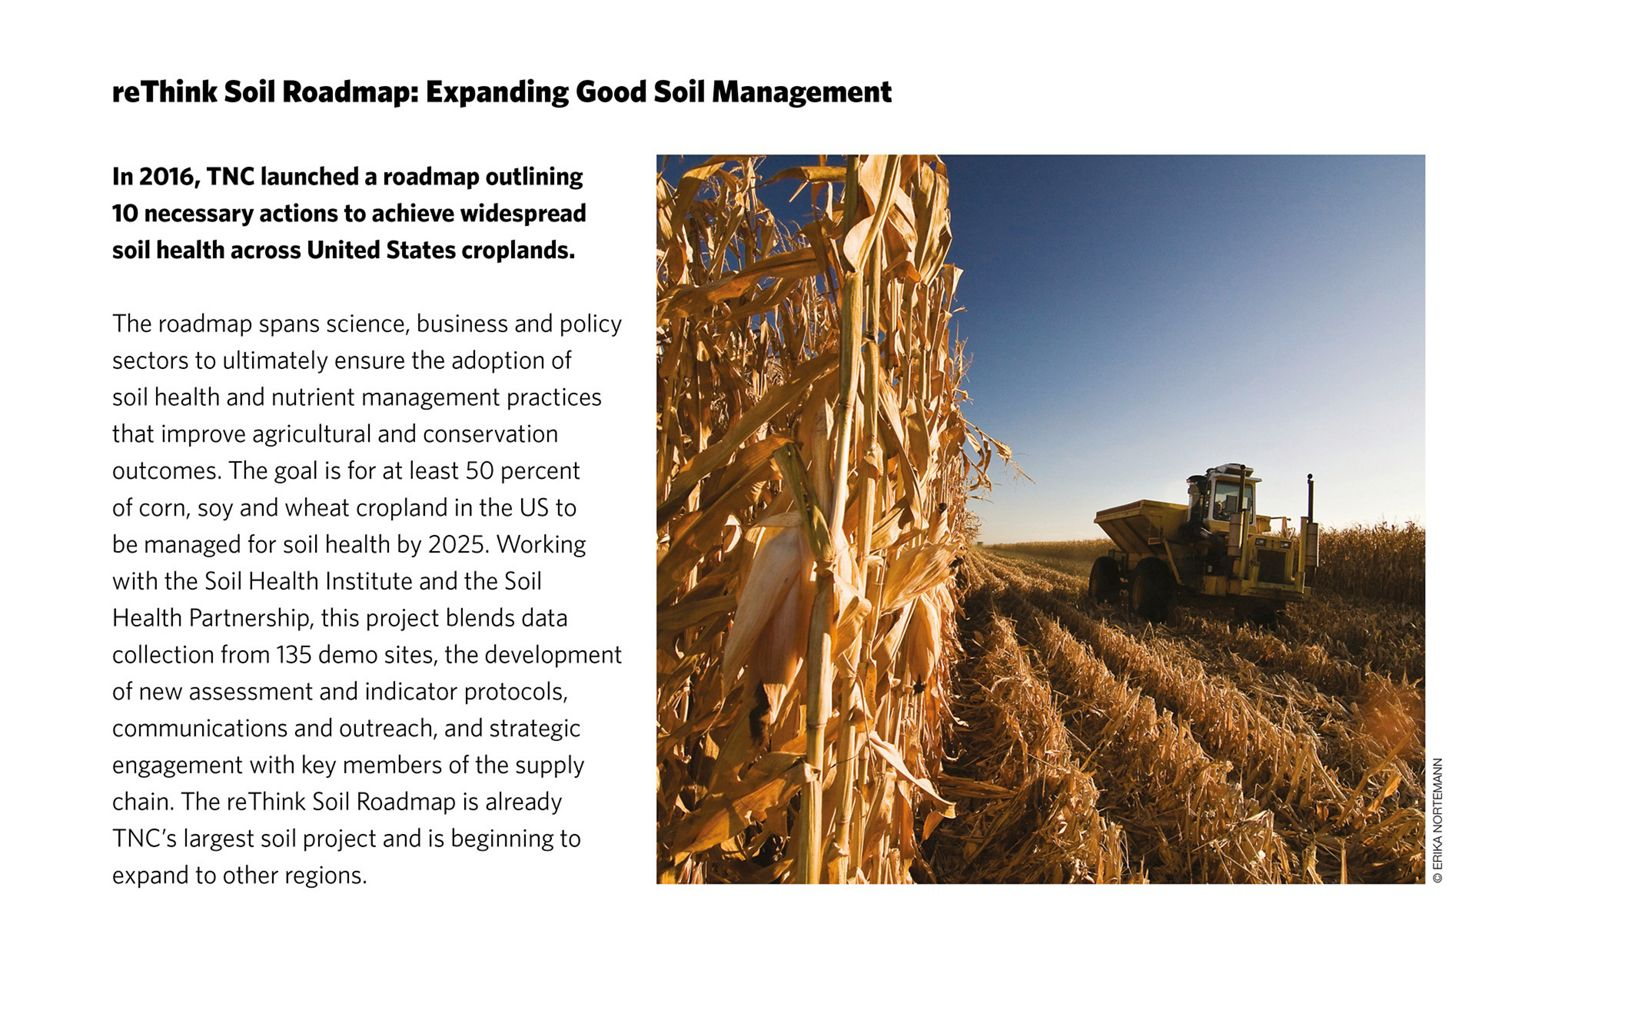 reThink Soil Roadmap